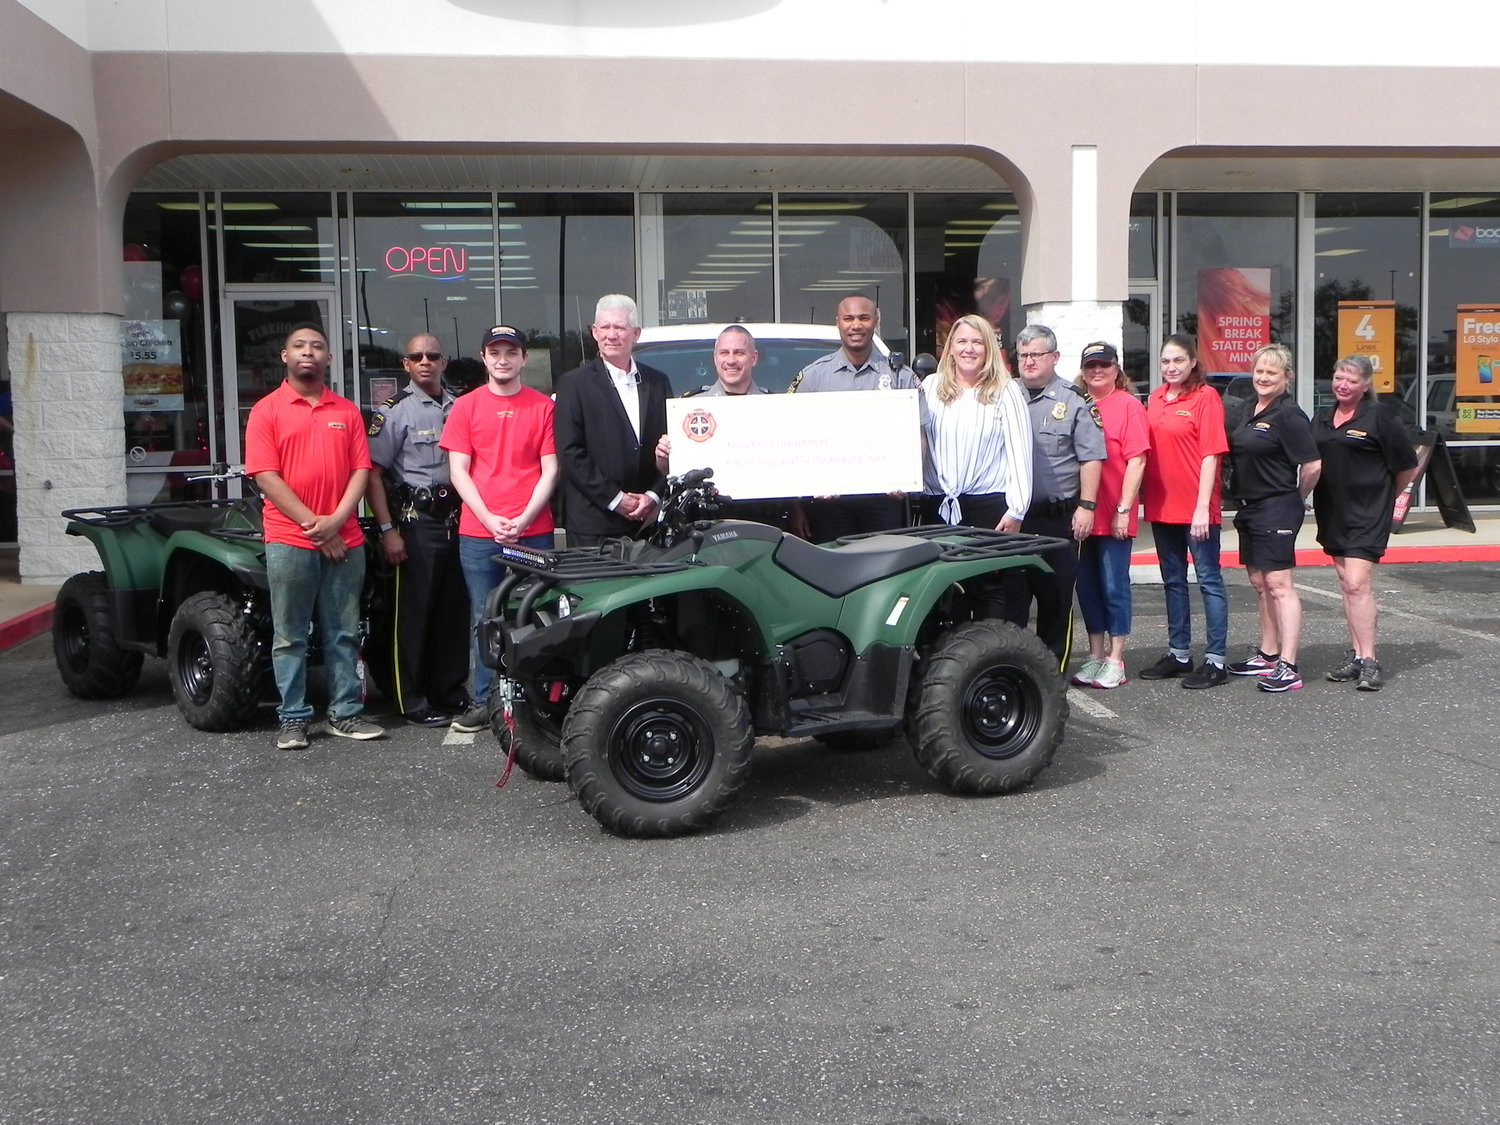 Foley PD officers, representatives from Firehouse Subs Public Safety Foundation, and Foley Firehouse Subs employees with the new ATVs donated to the Foley PD through a grant awarded by the foundation during a presentation at the Foley Firehouse Subs.